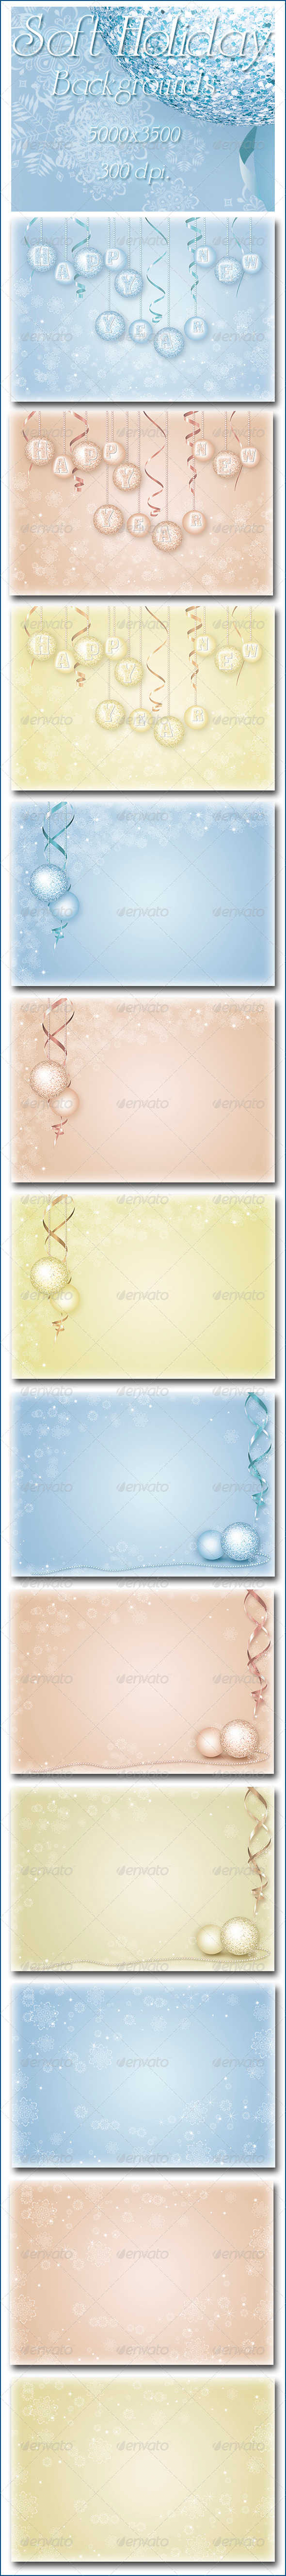 GraphicRiver Soft Holiday Backgrounds 6202719